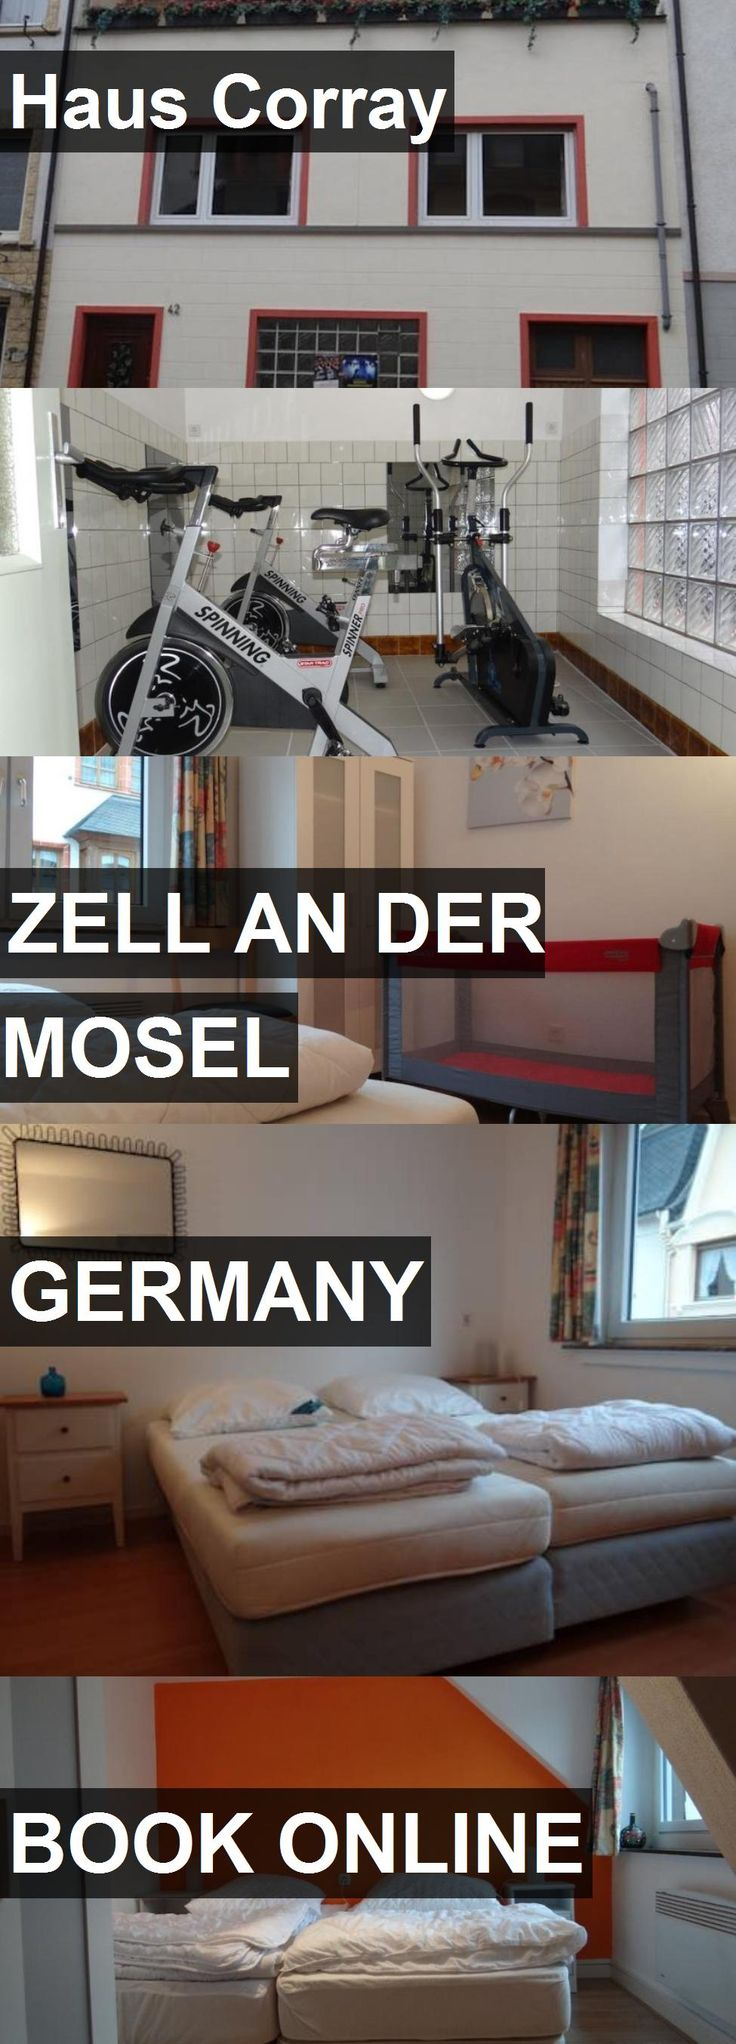 Hotel Haus Corray in Zell an der Mosel, Germany. For more information, photos, reviews and best prices please follow the link. #Germany #ZellanderMosel #hotel #travel #vacation